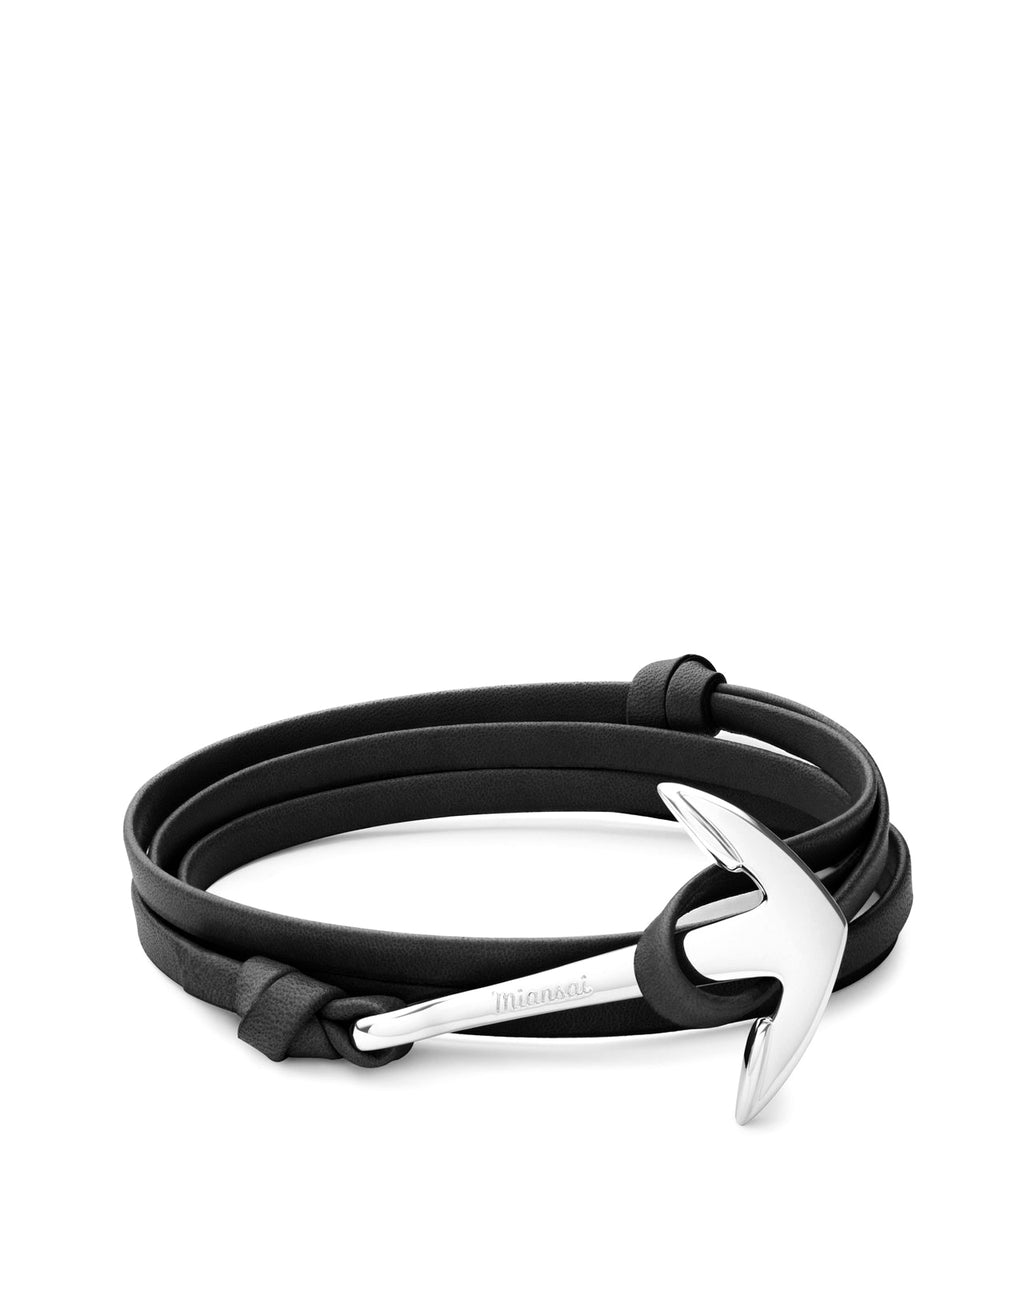 Miansai - Anchor On Leather Bracelet Polished Silver / Black